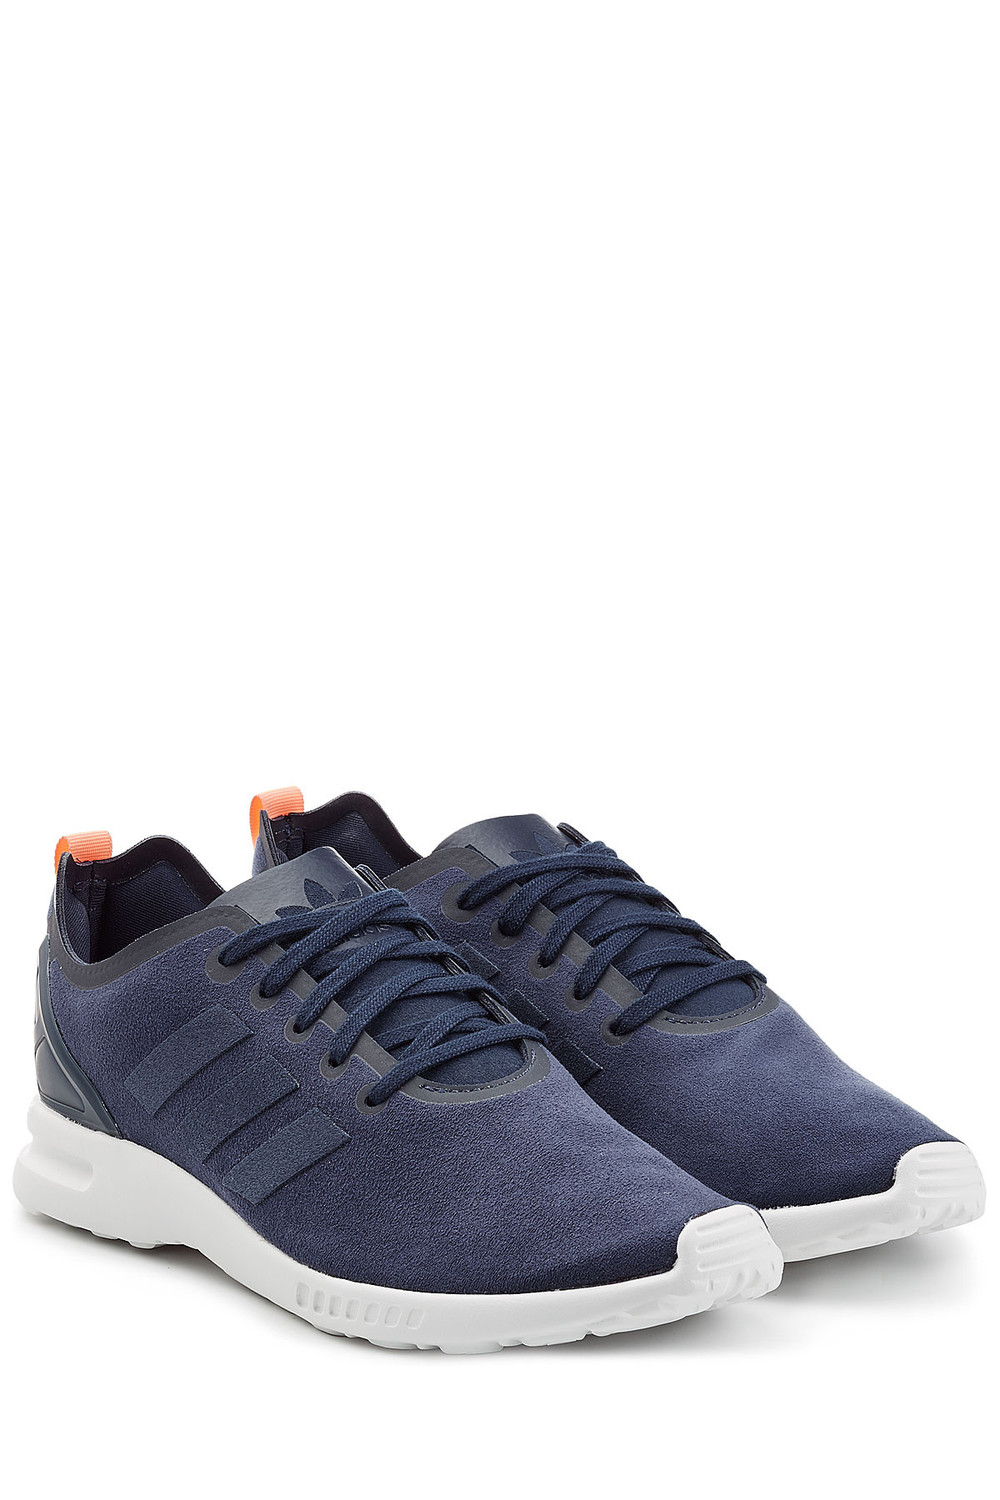 EQT SUPPORT ADV Lifestyle Shoes Cheap Adidas US